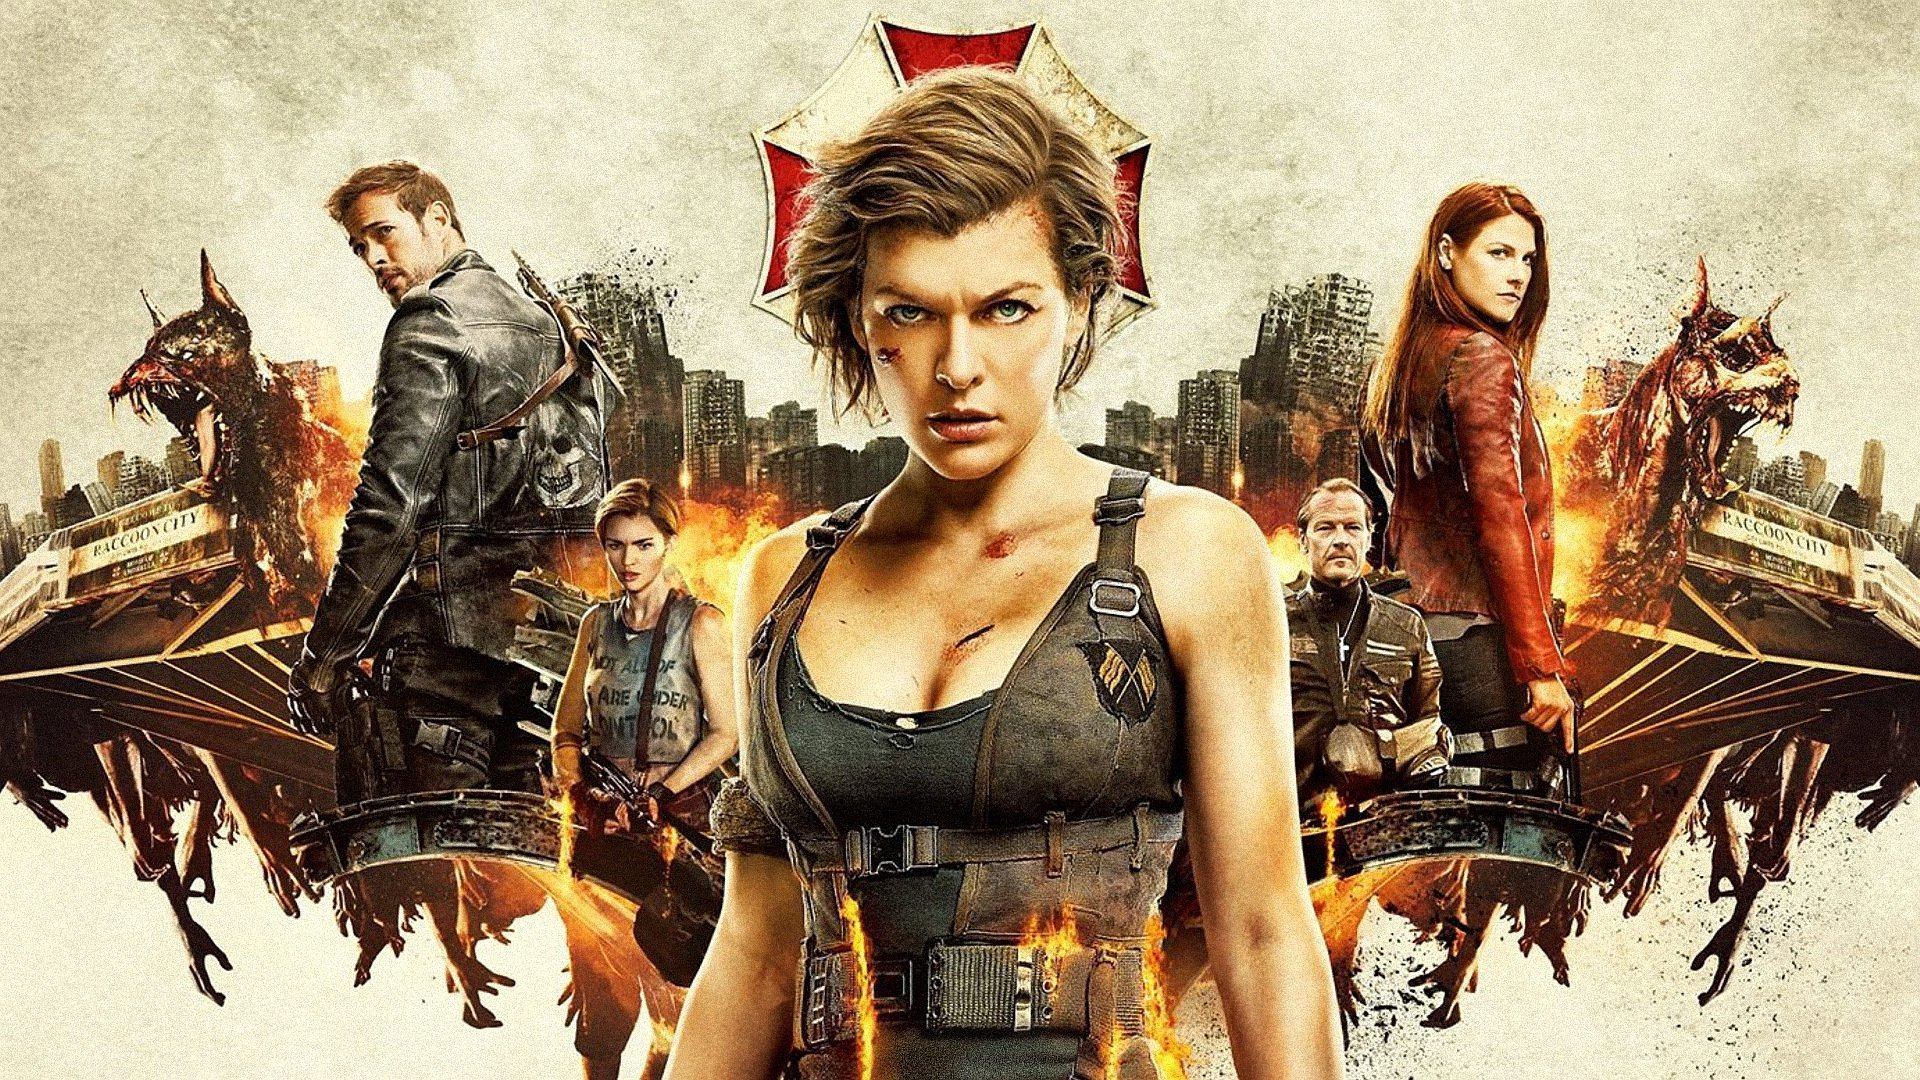 7 Easter Eggs in 'Resident Evil: The Final Chapter' | Inverse